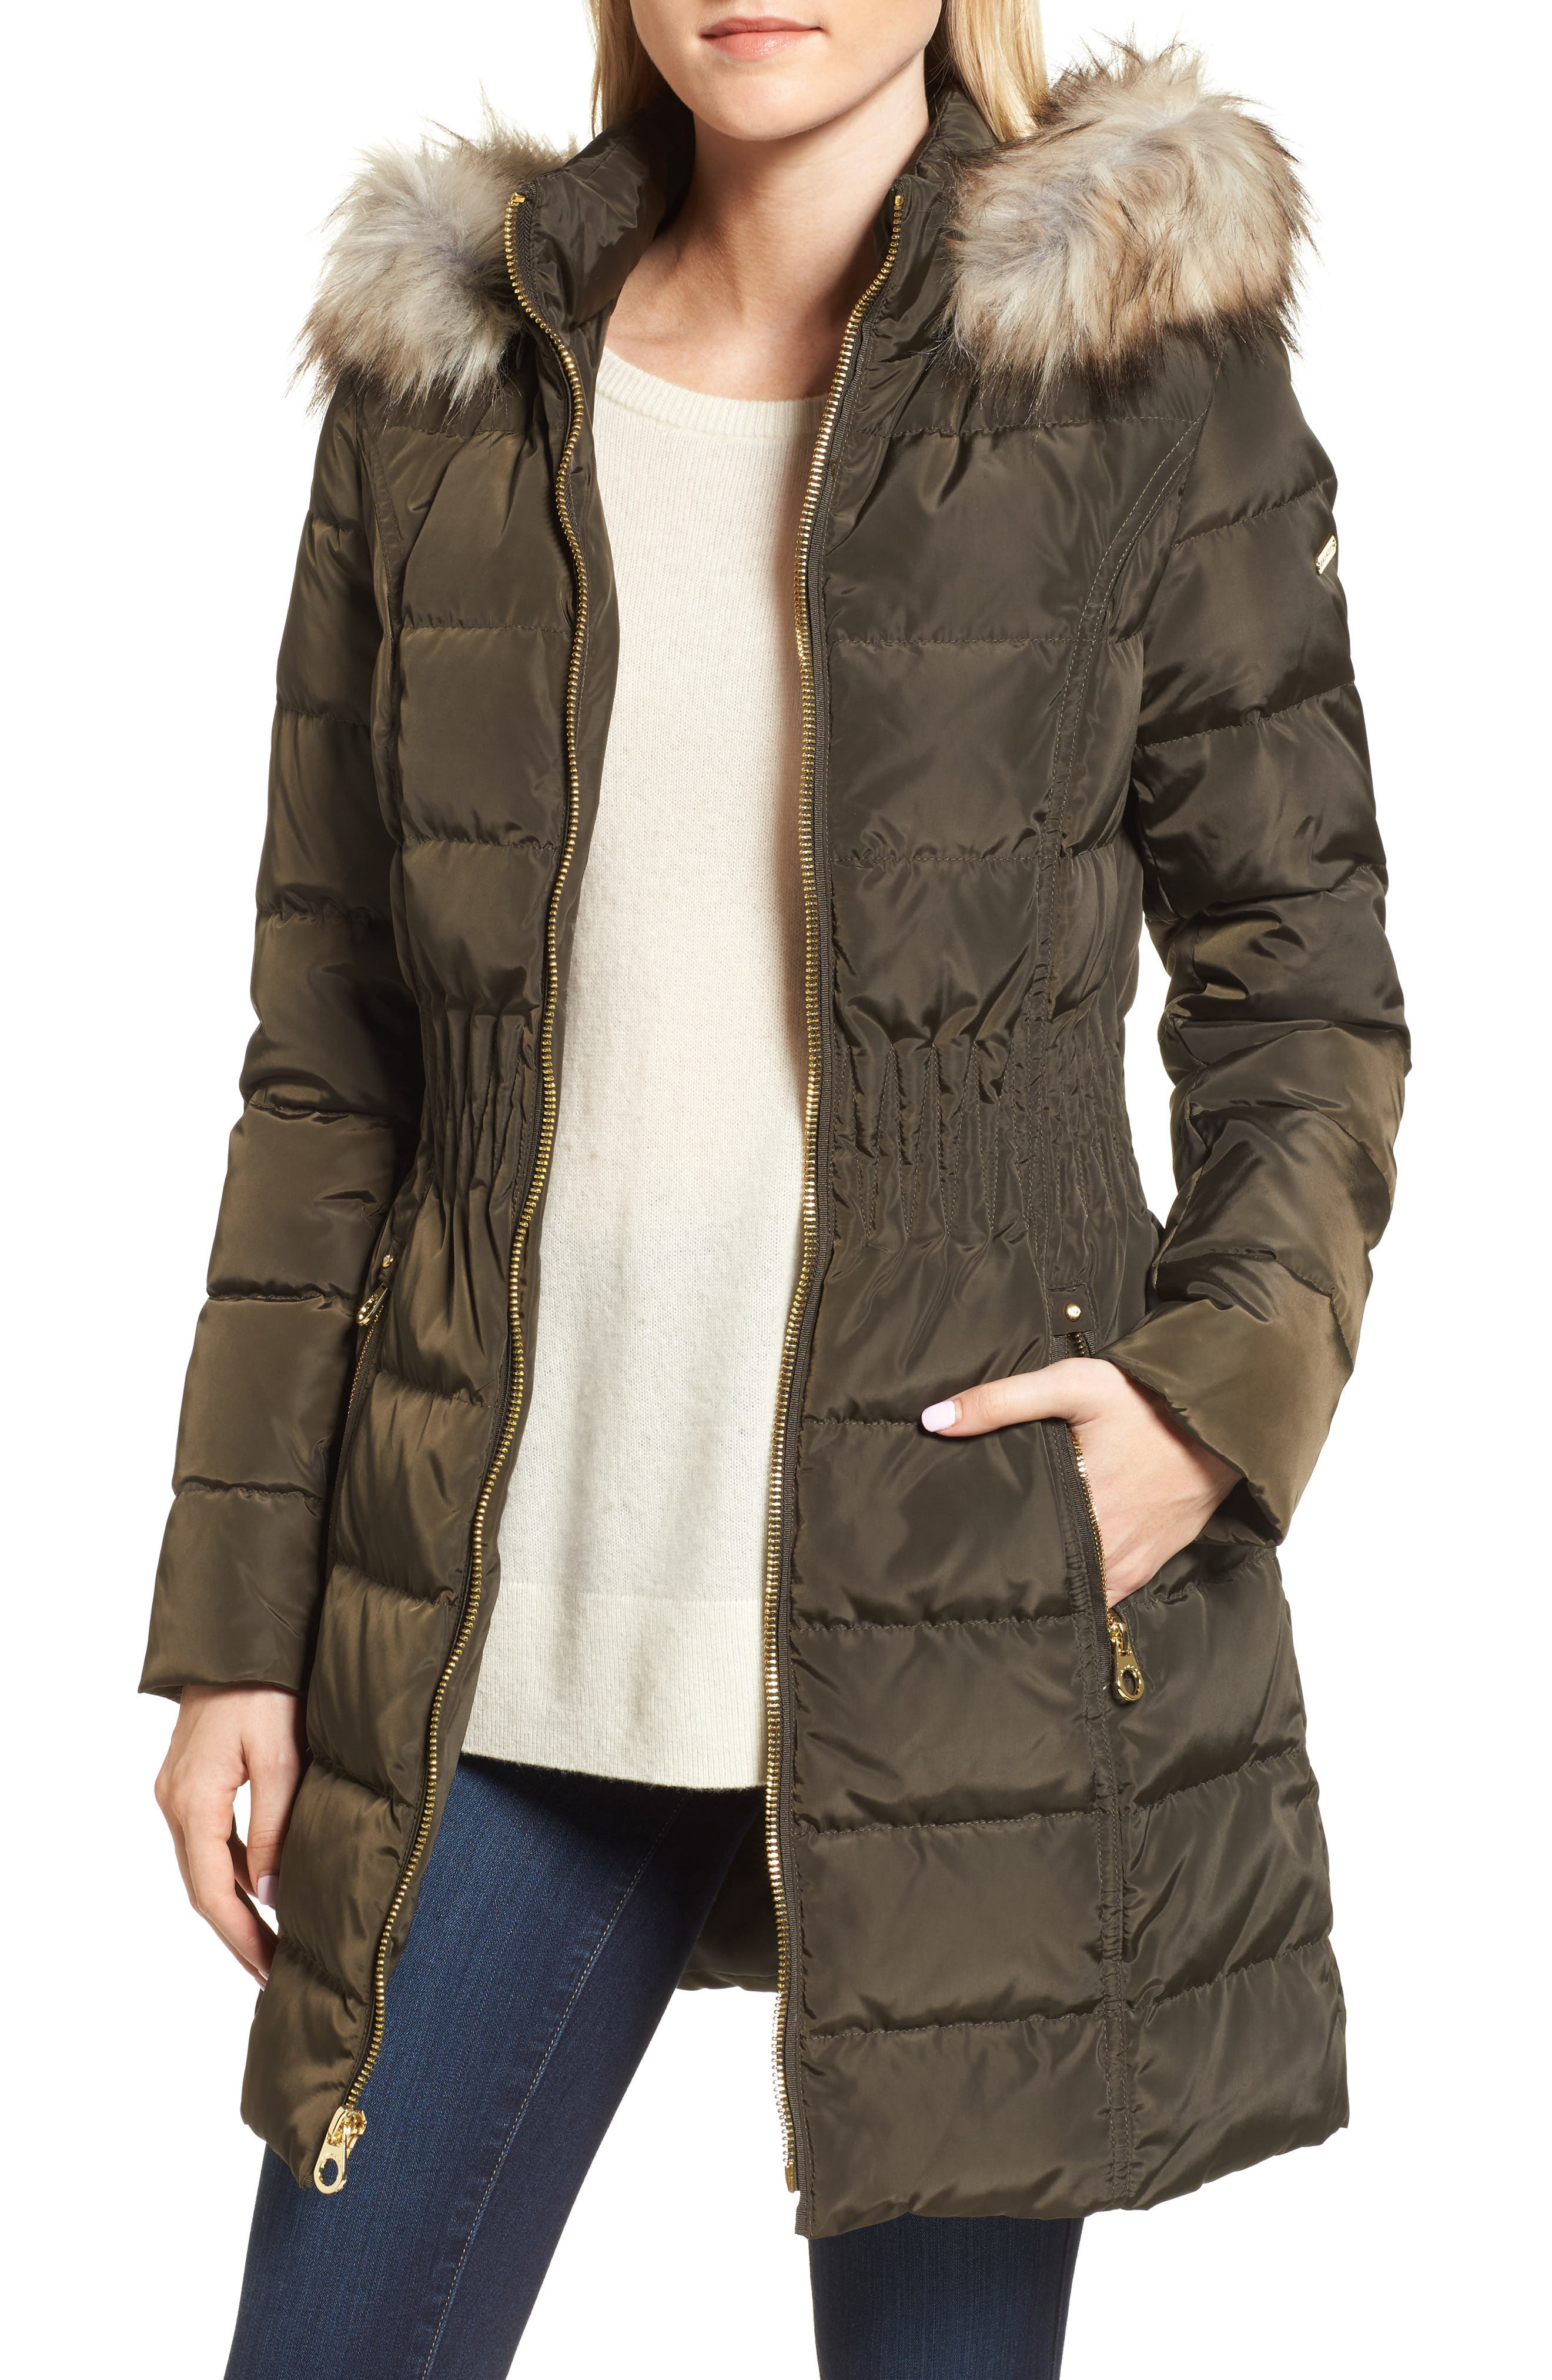 Main Image - Laundry by Shelli Segal Hooded Quilted Jacket with Faux Fur Trim